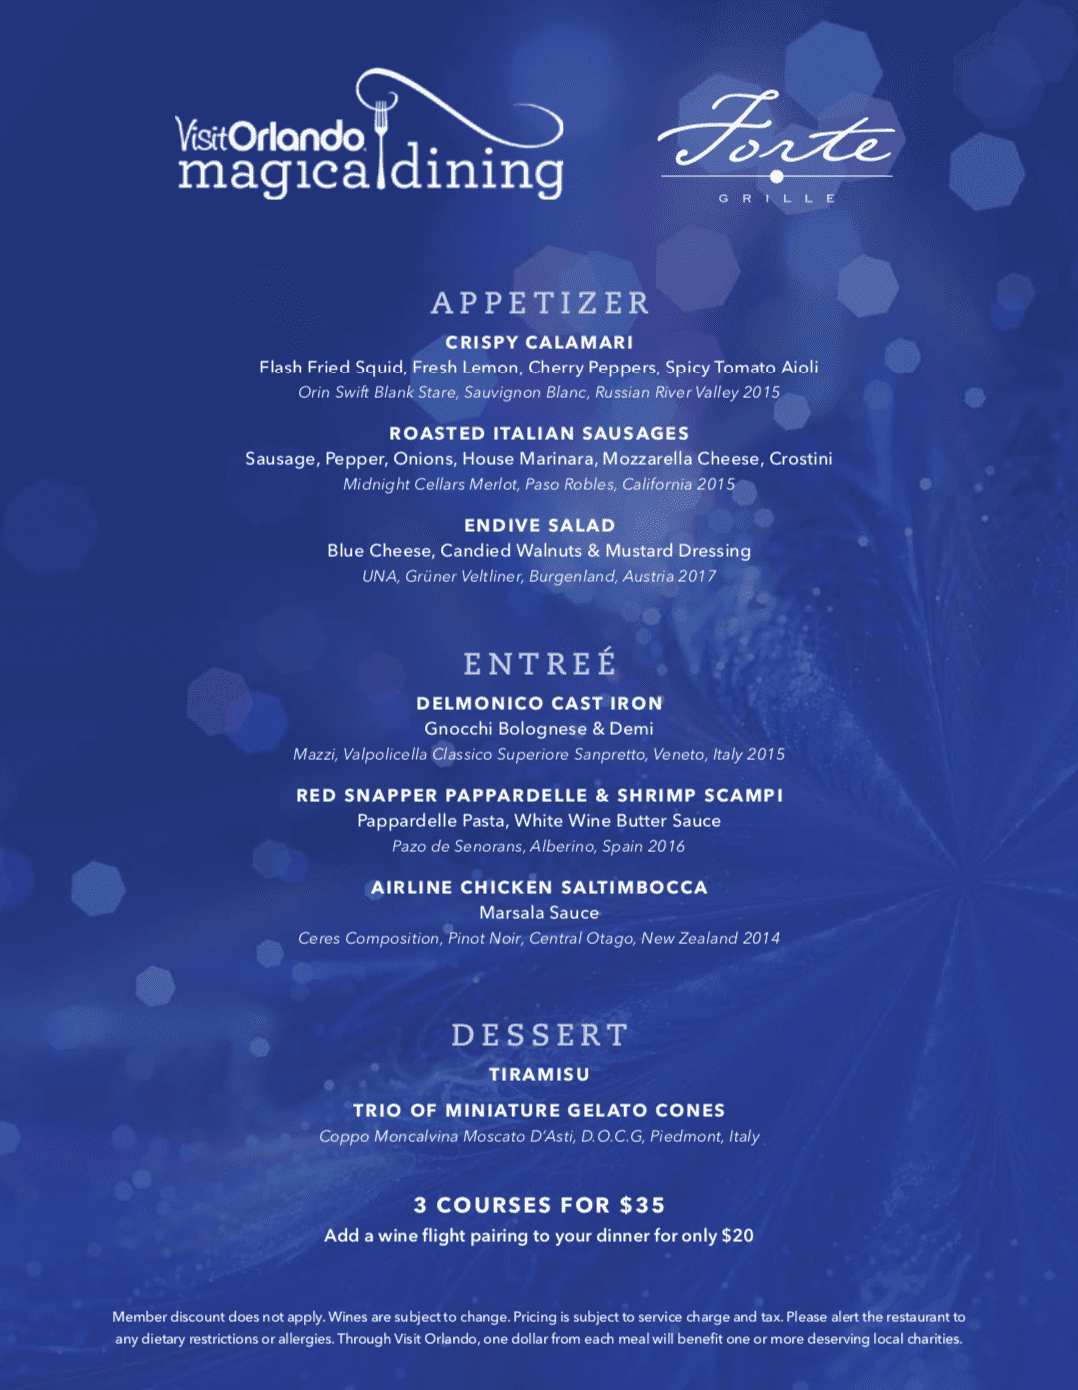 Reunion Resort Magical Dining Forte Grille Menu